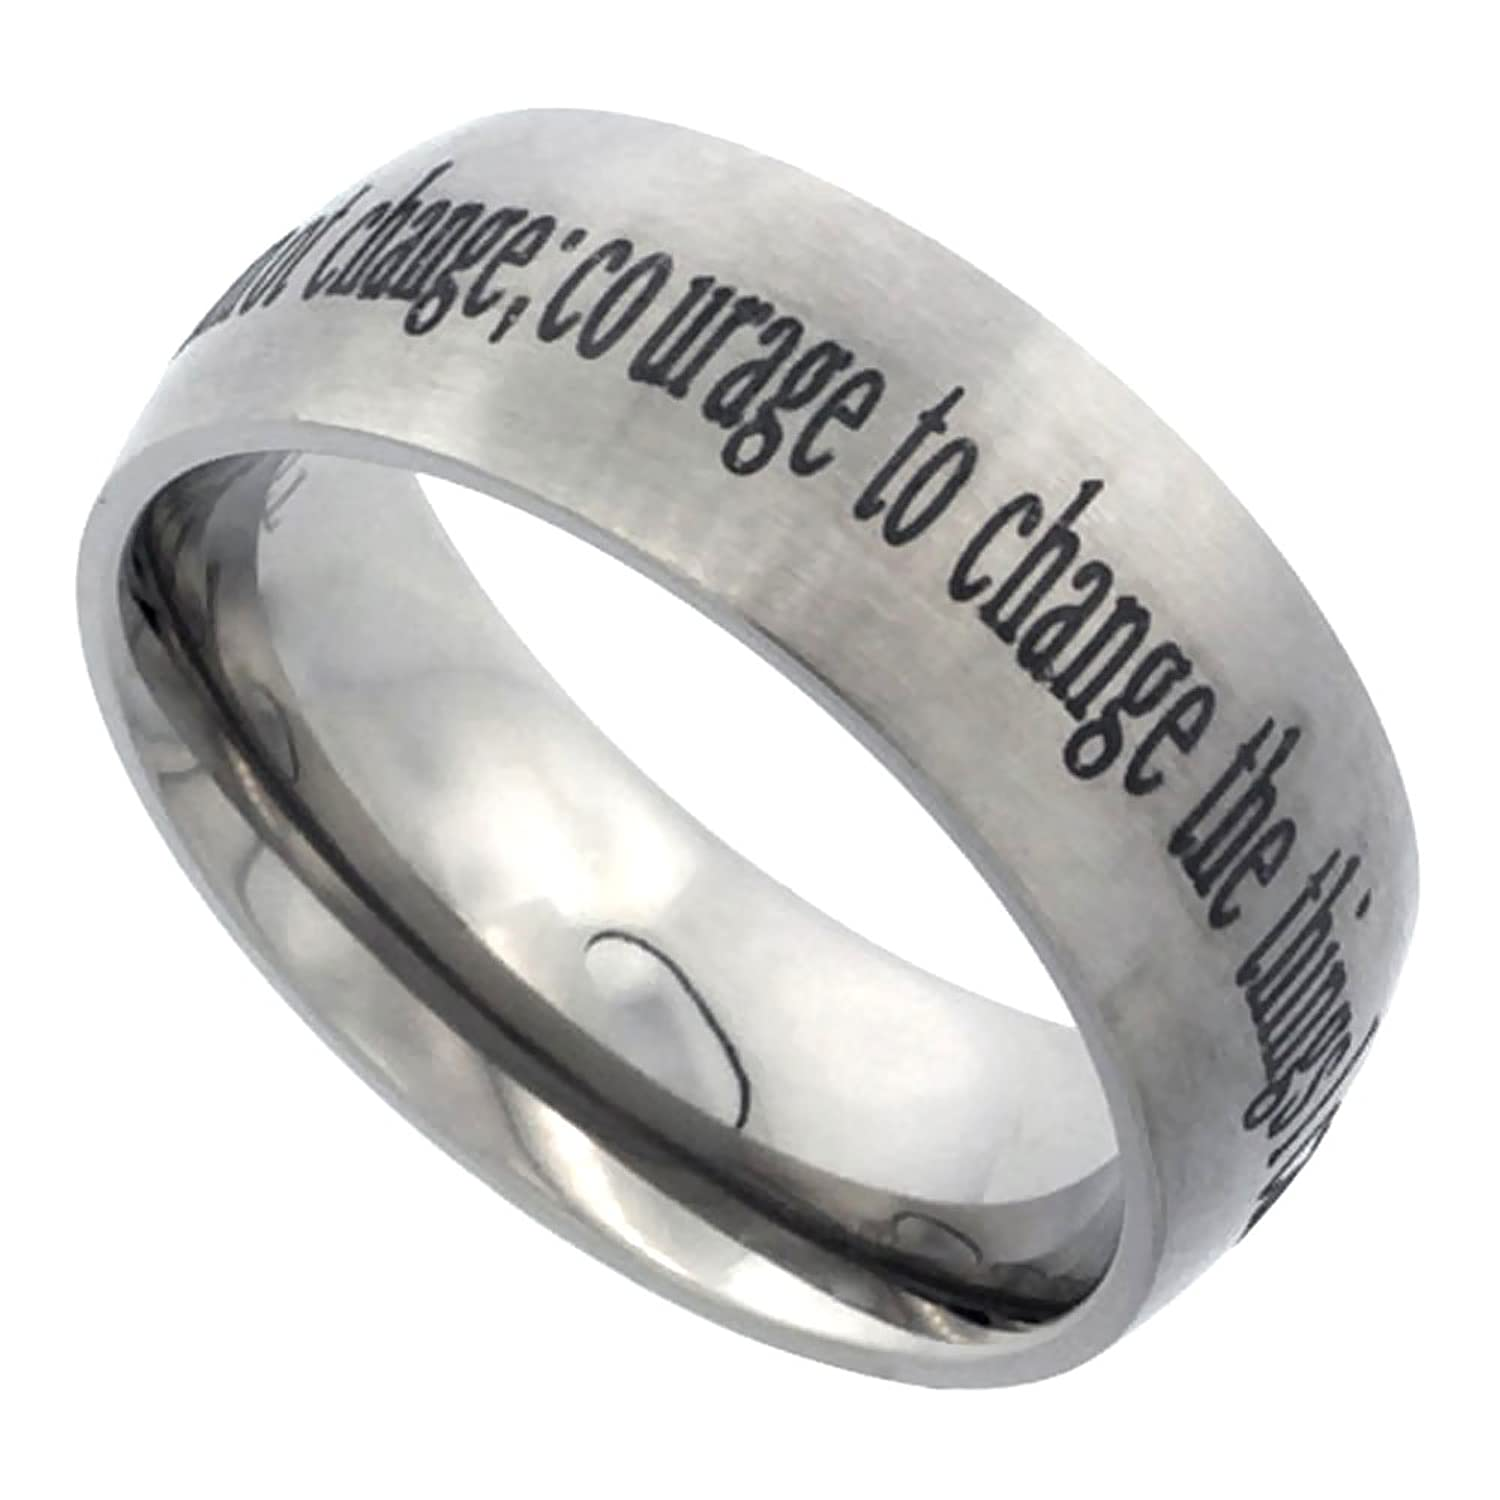 his i jewellery matching love and rings image besttohave with wedding engraved titanium couple you ring mens hers sets